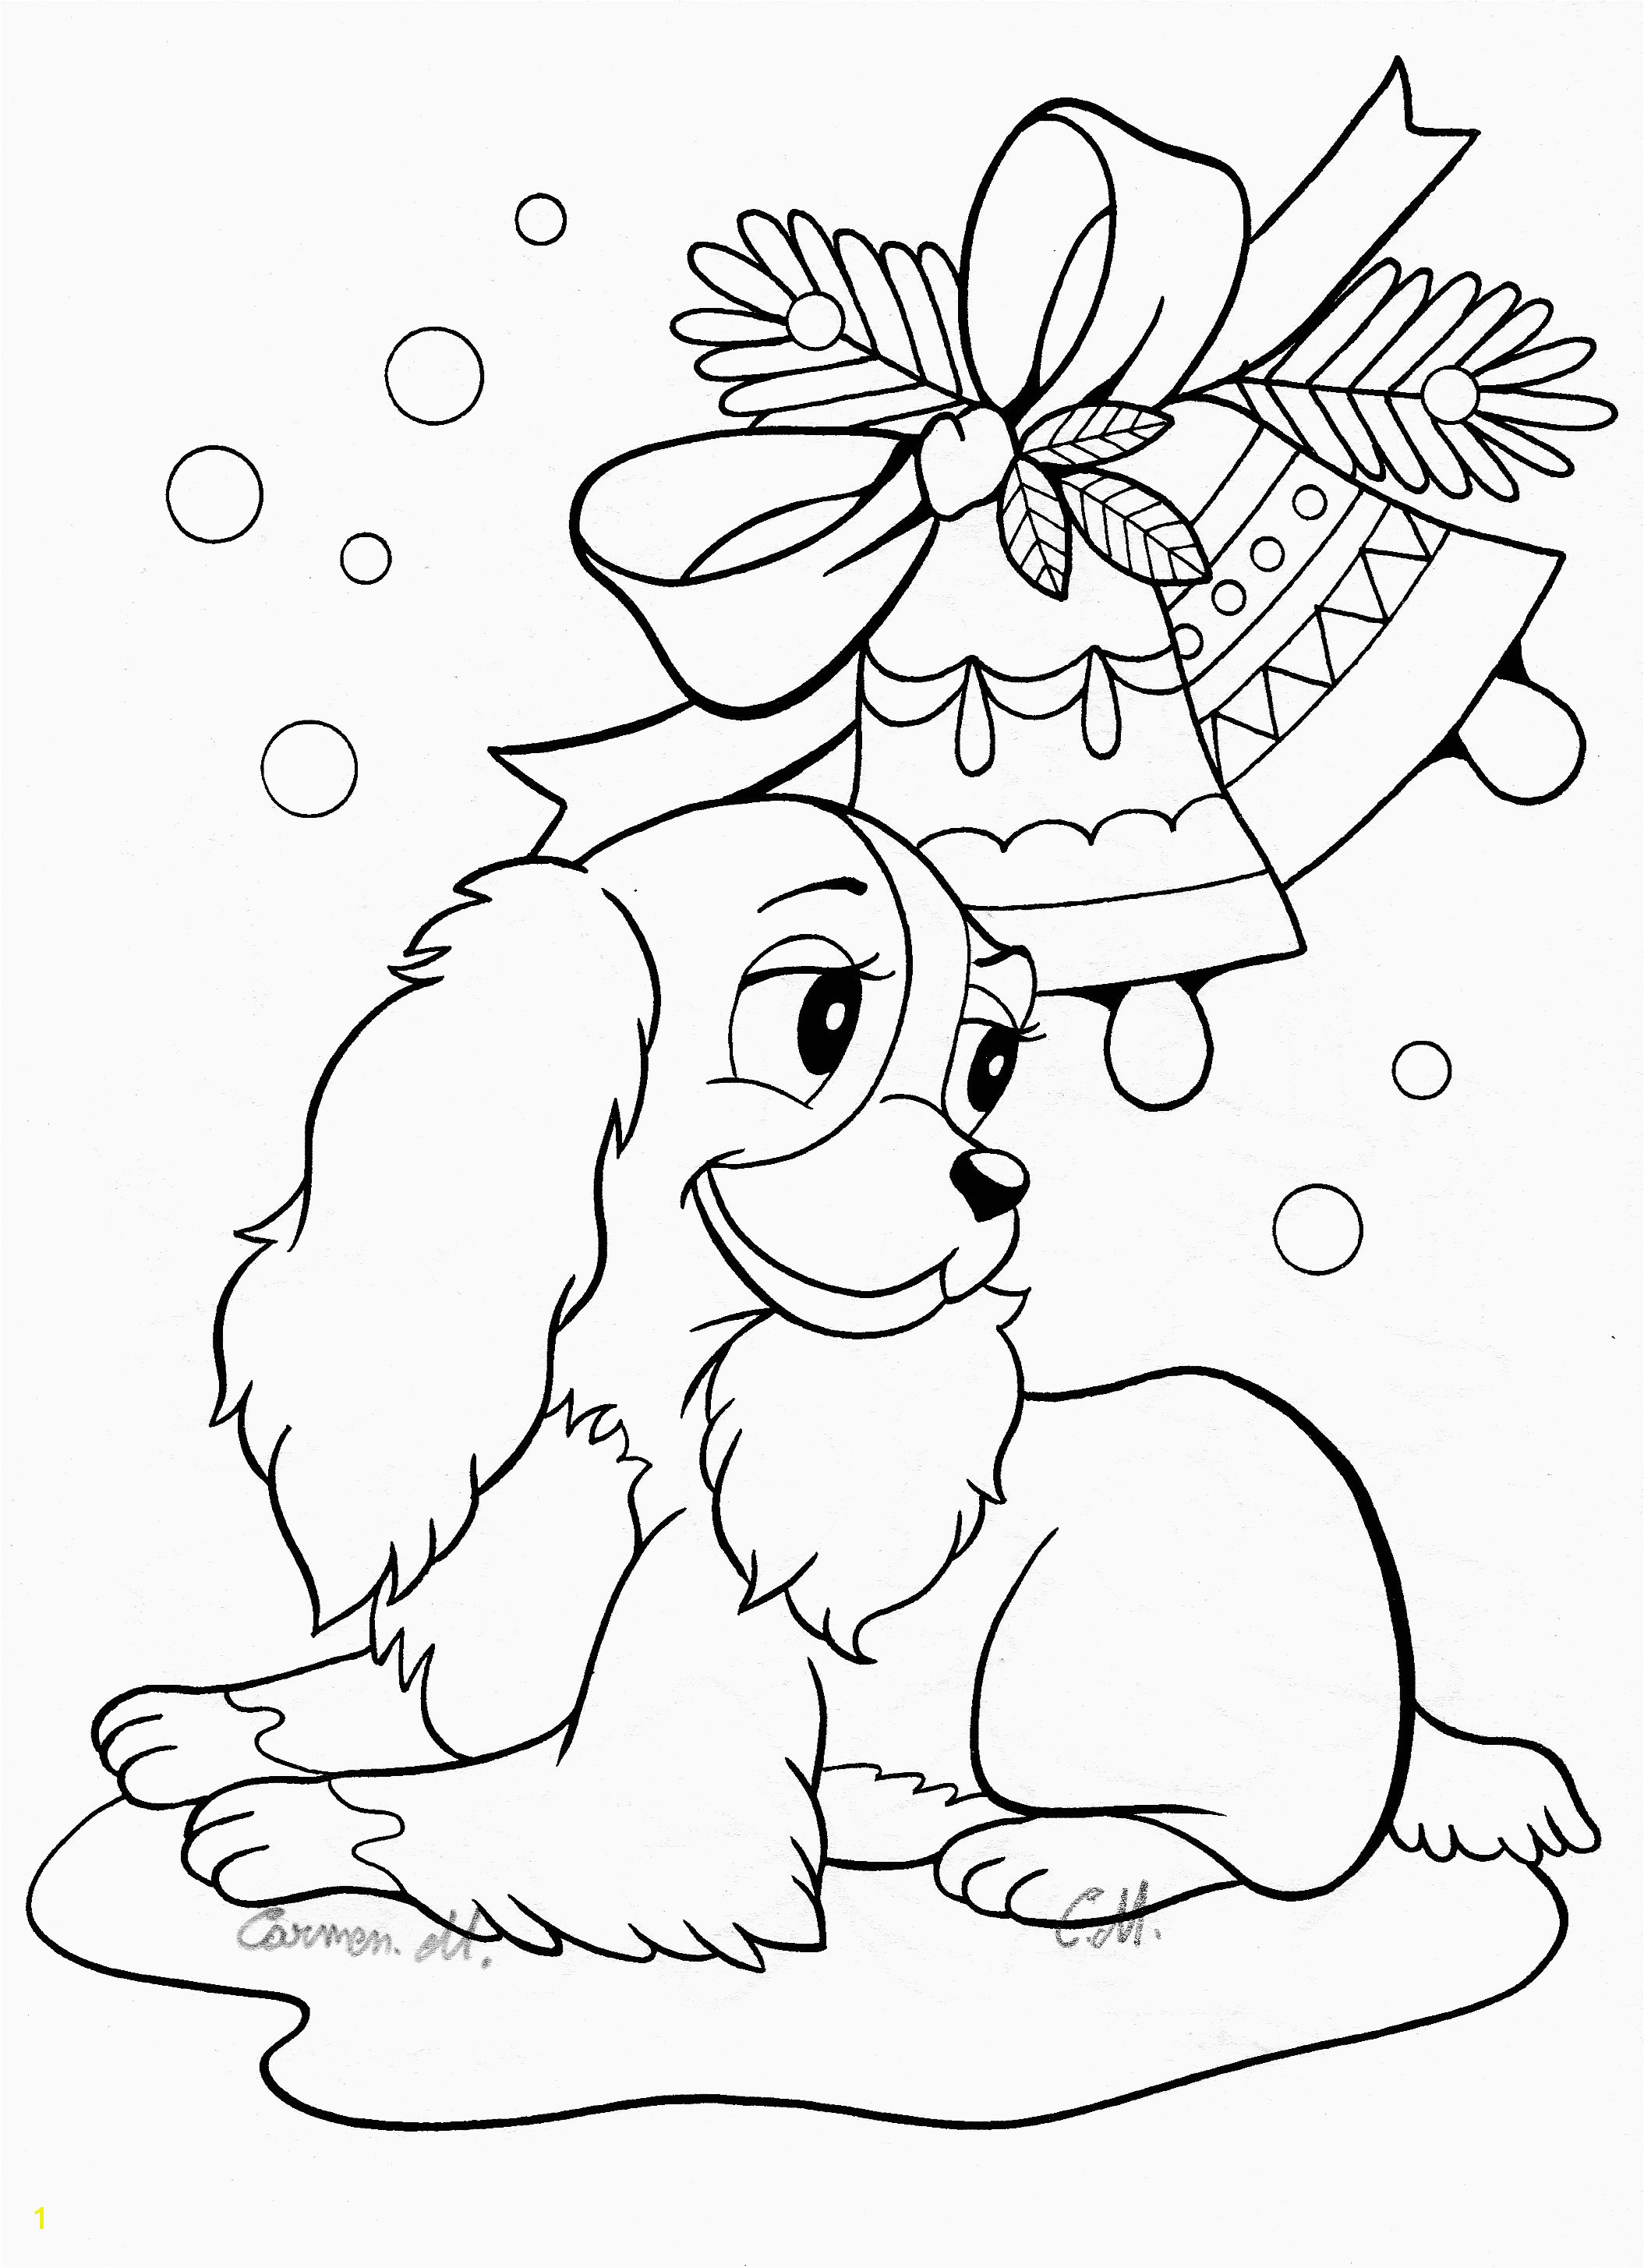 Kindergarten Coloring Pages Free Inspirational Image Coloring Pages Printable for Teenagers New Printable Od Dog Coloring